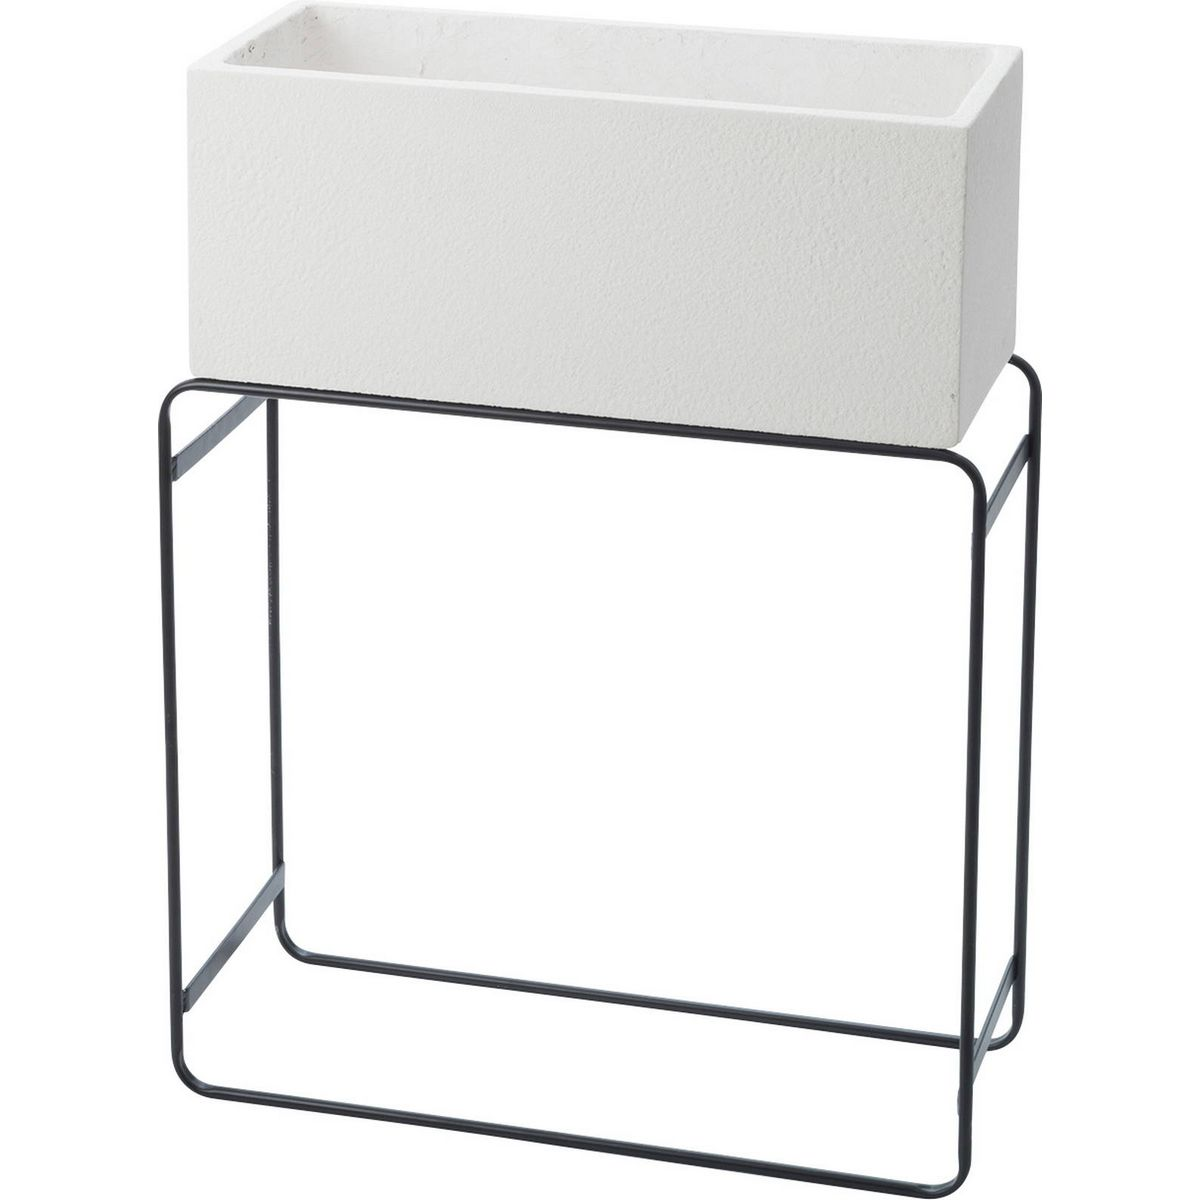 YDM/STAND PLANTER MID/PED-0058【01】【取寄】